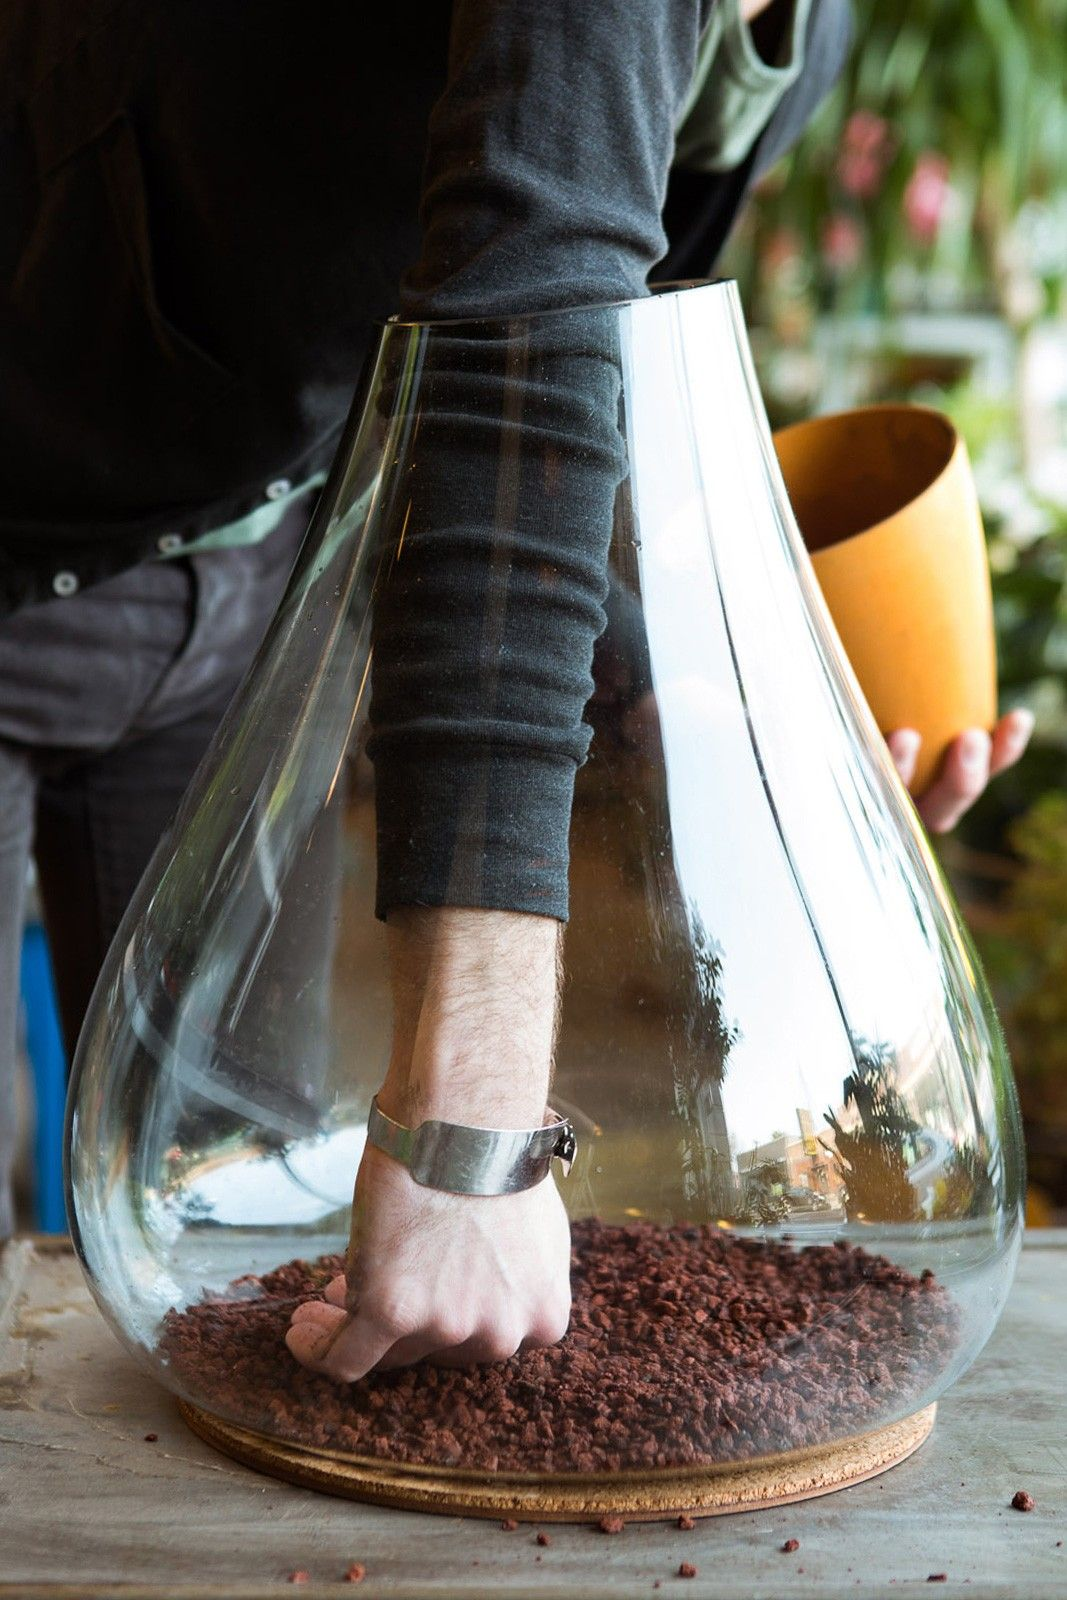 5 Inspiring (& Easy!) DIY Indoor Gardens #refinery29 http://www.refinery29.com/urban-gardening#slide-3 Step 1: Start by adding a layer of lava rock at the bottom of your container.